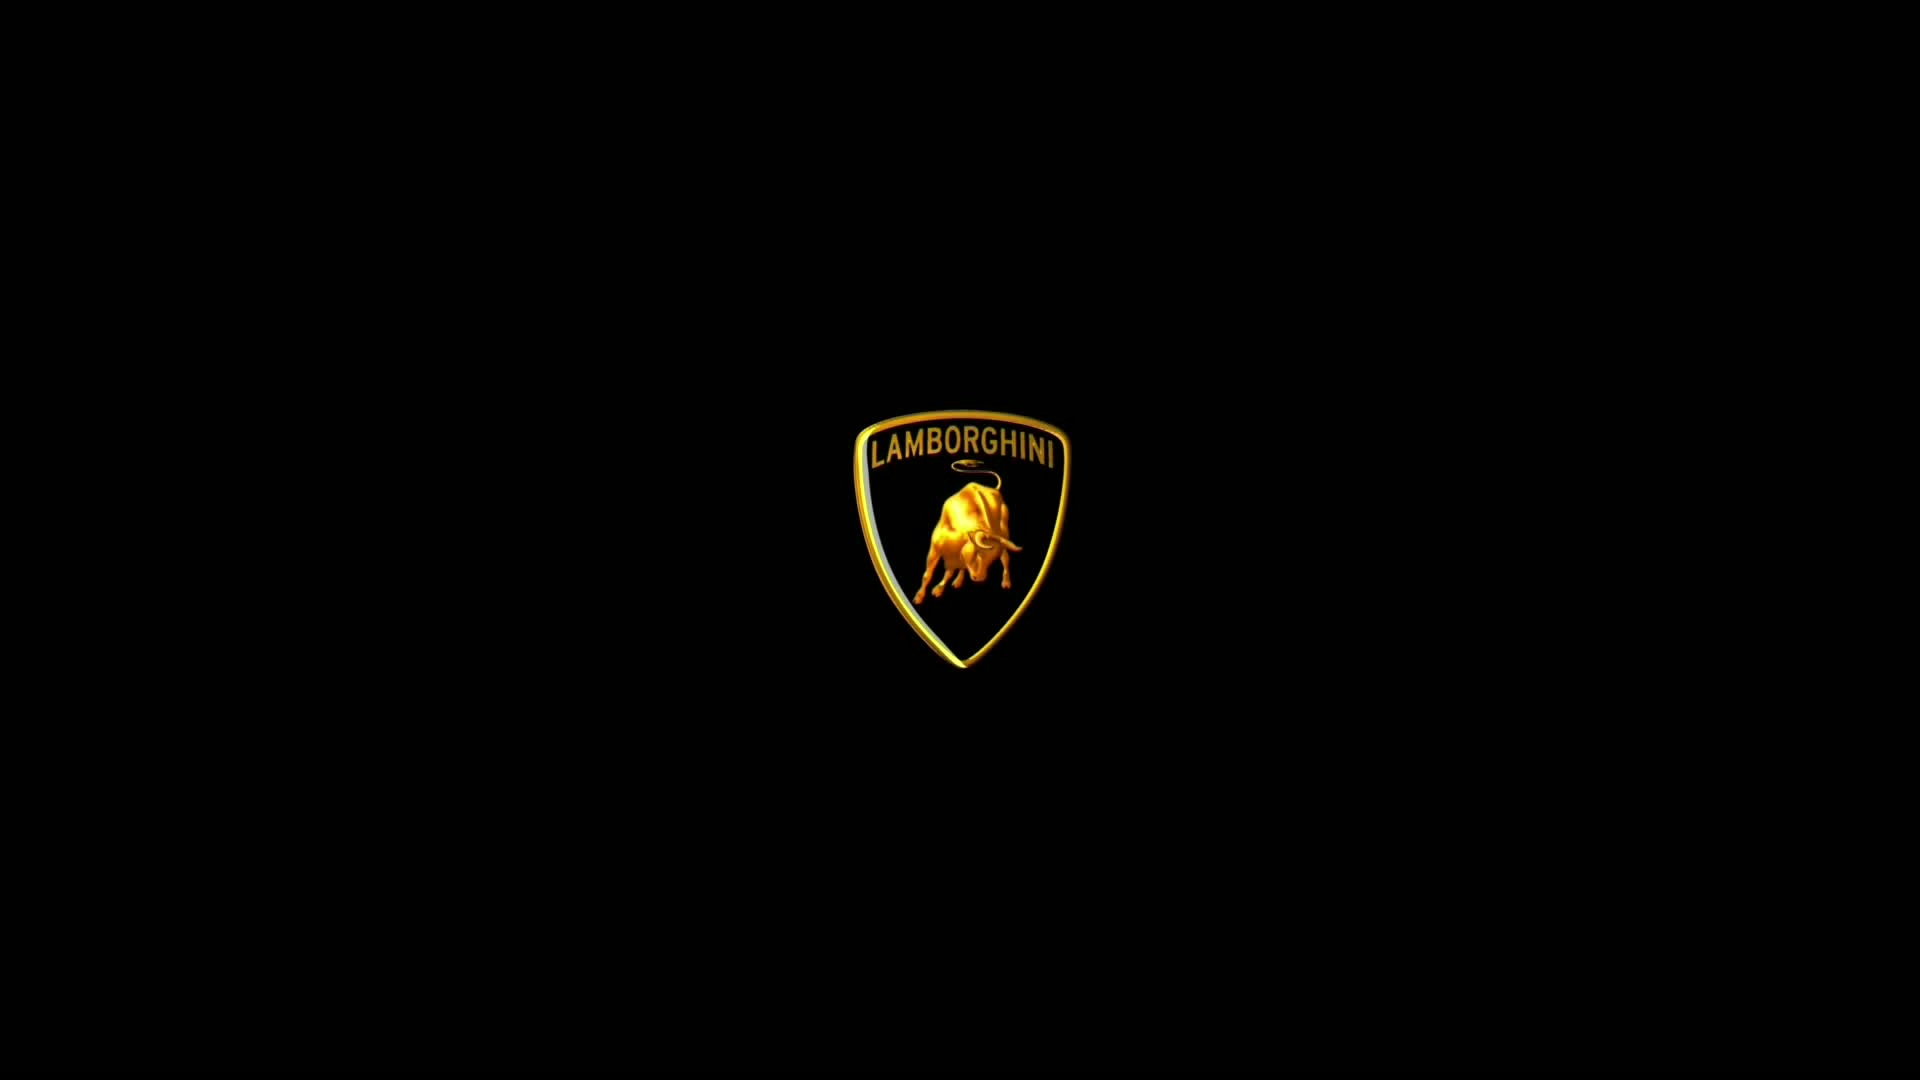 lamborghini logo 2014 wallpapers Desktop Backgrounds for HD 1920x1080